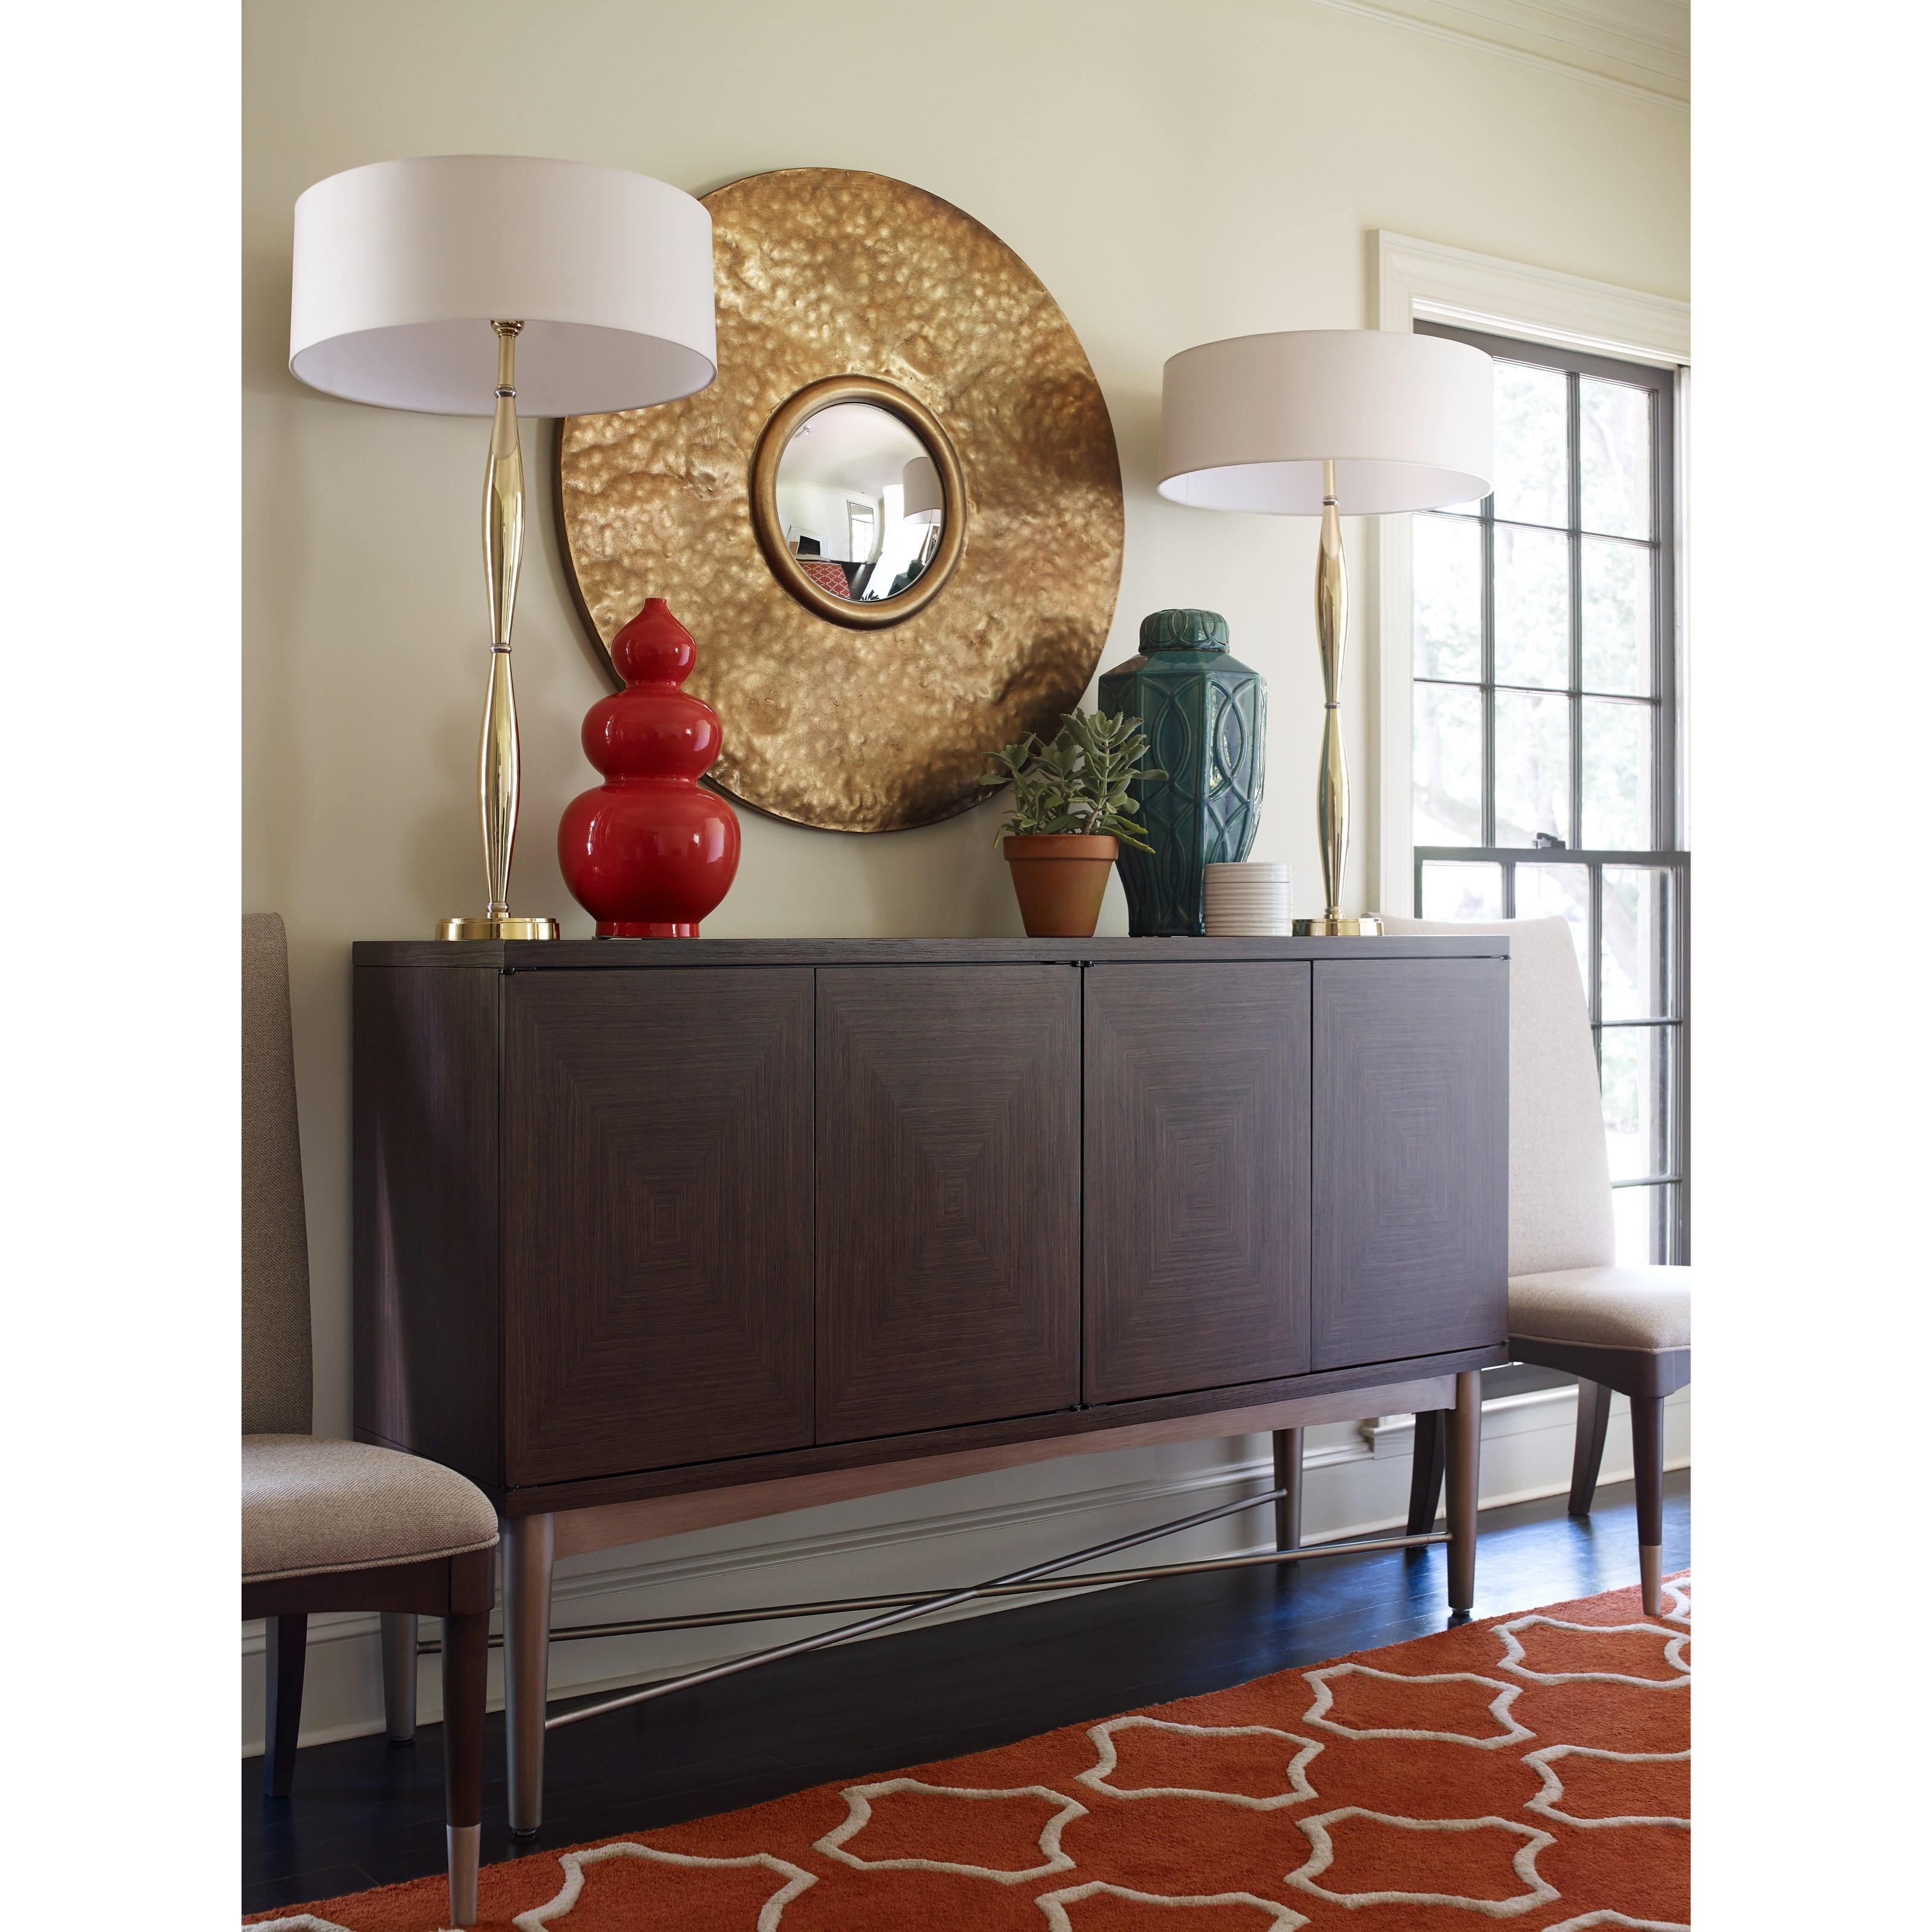 Rachael ray home by legacy classic soho mid century modern for Rachael ray furniture collection